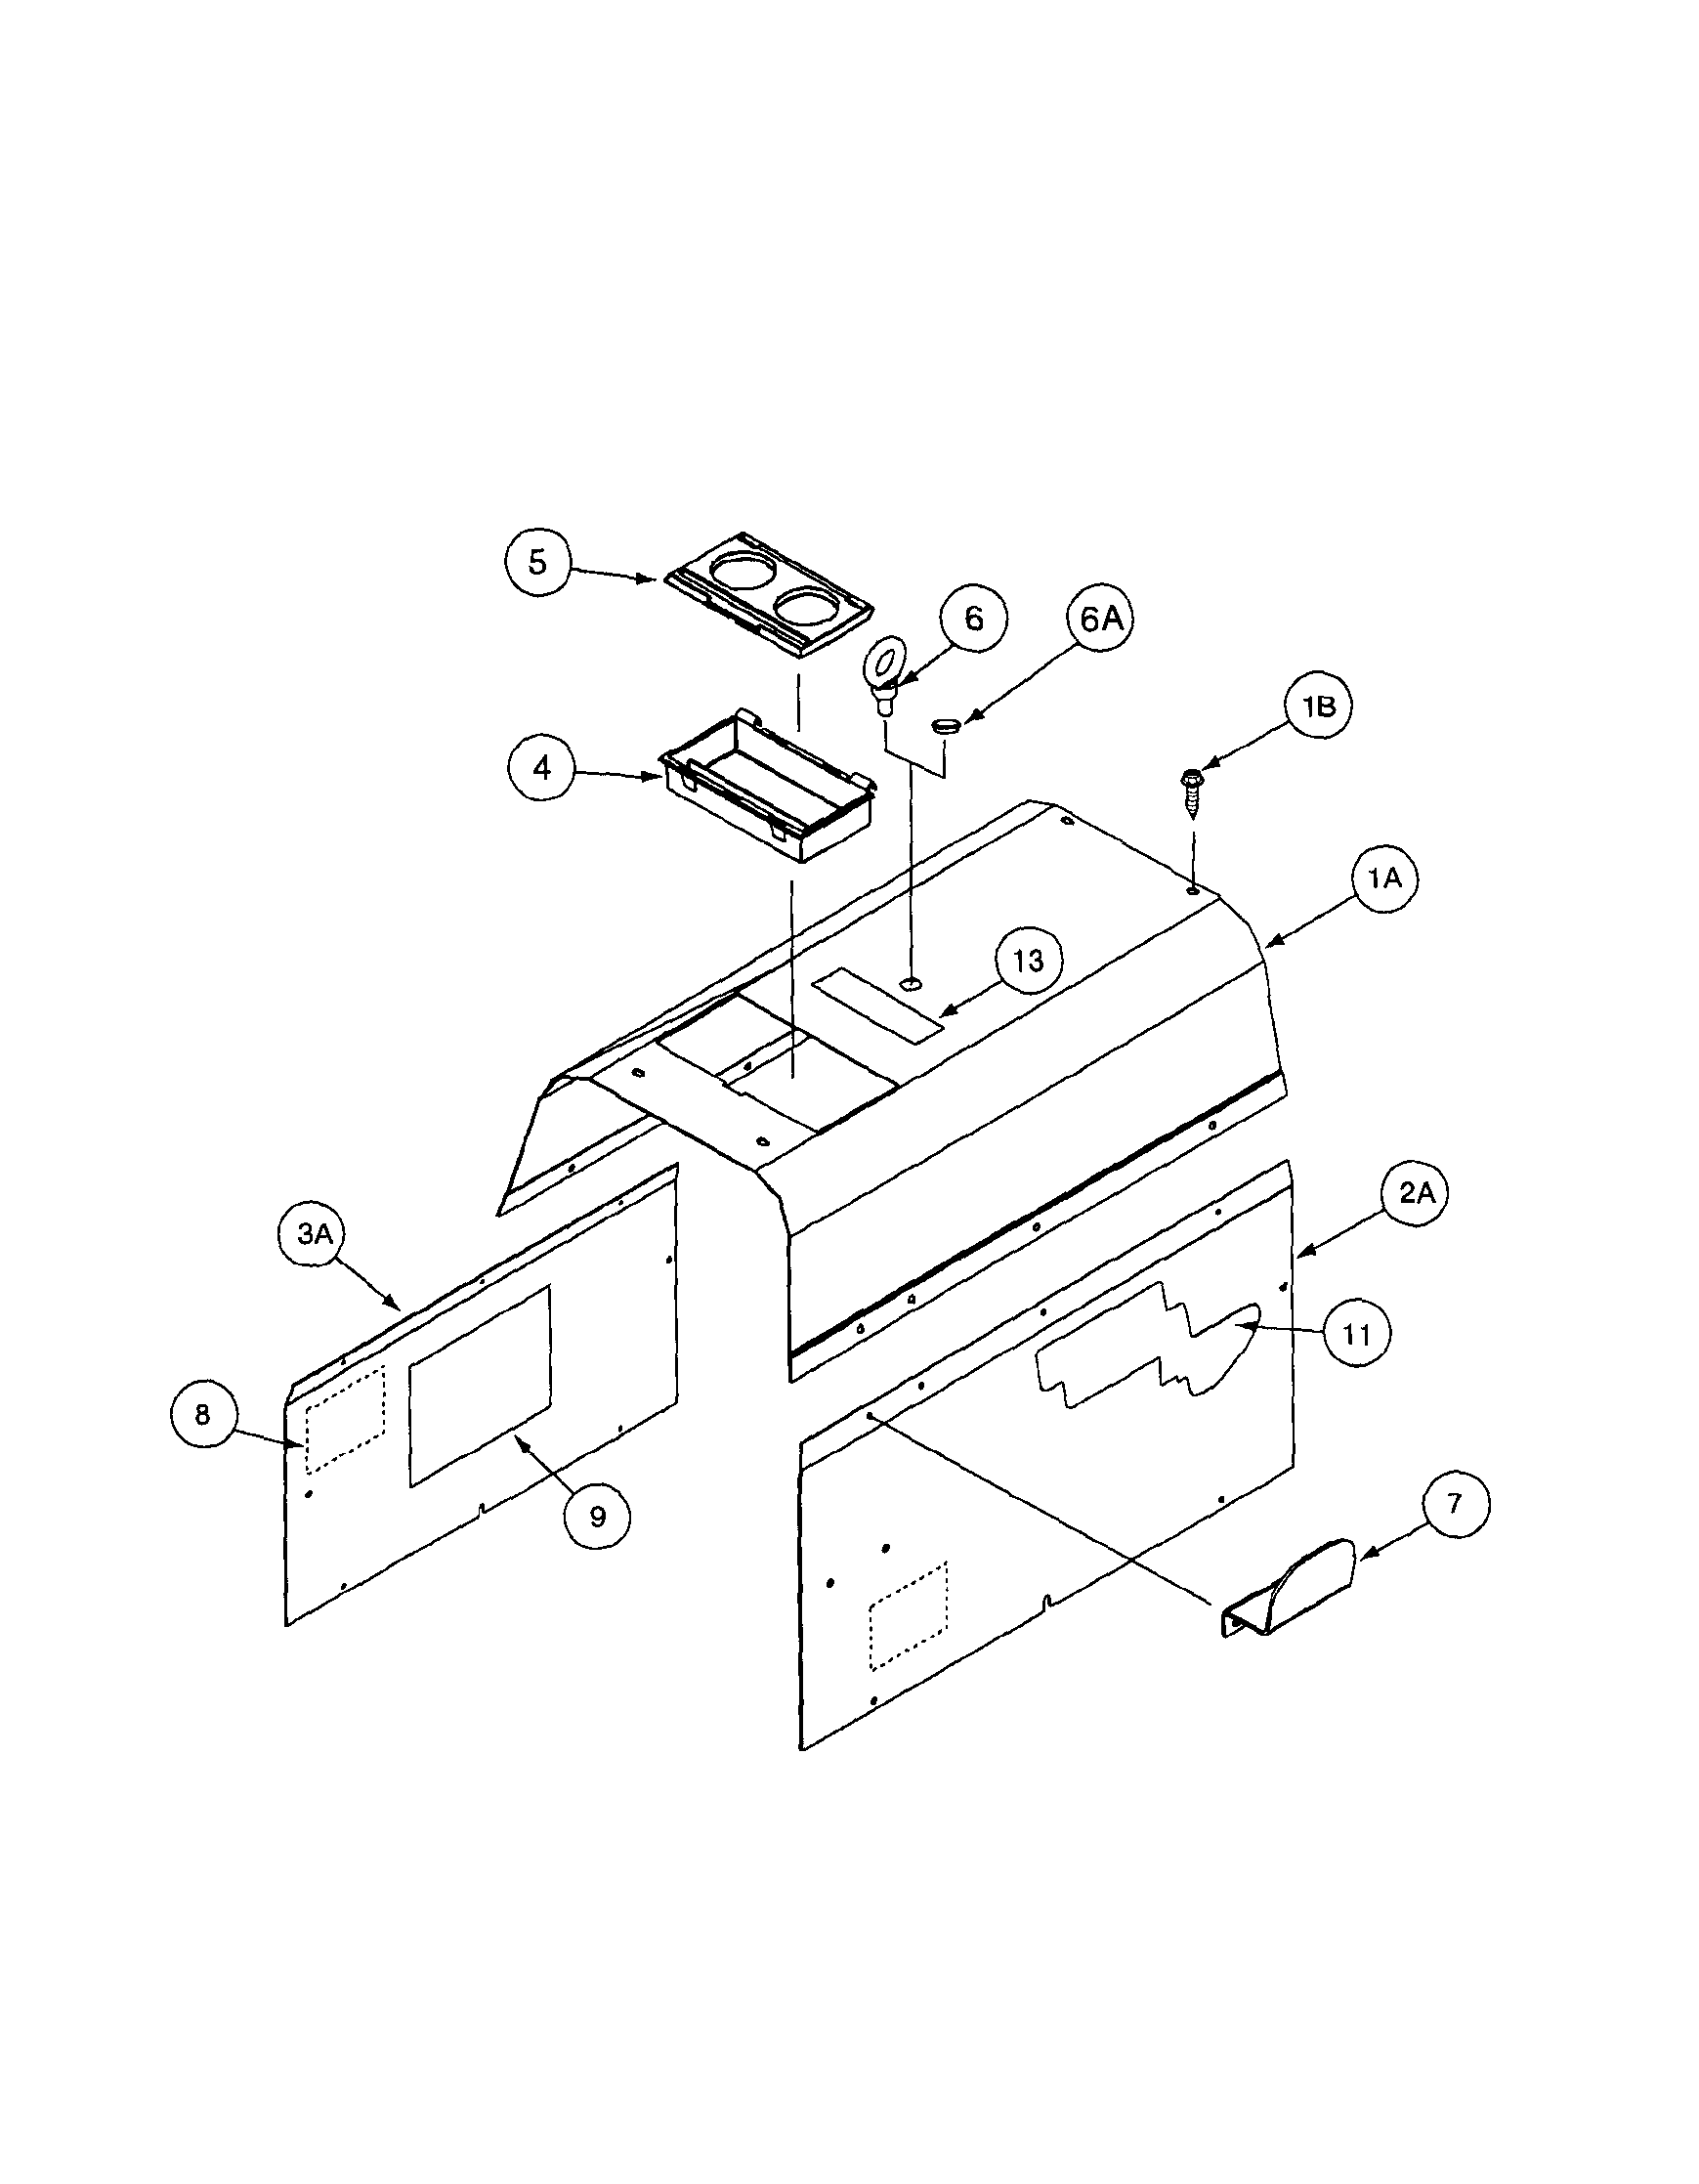 hight resolution of lincoln precision tig 185 11105 to 11109 cover assembly diagram